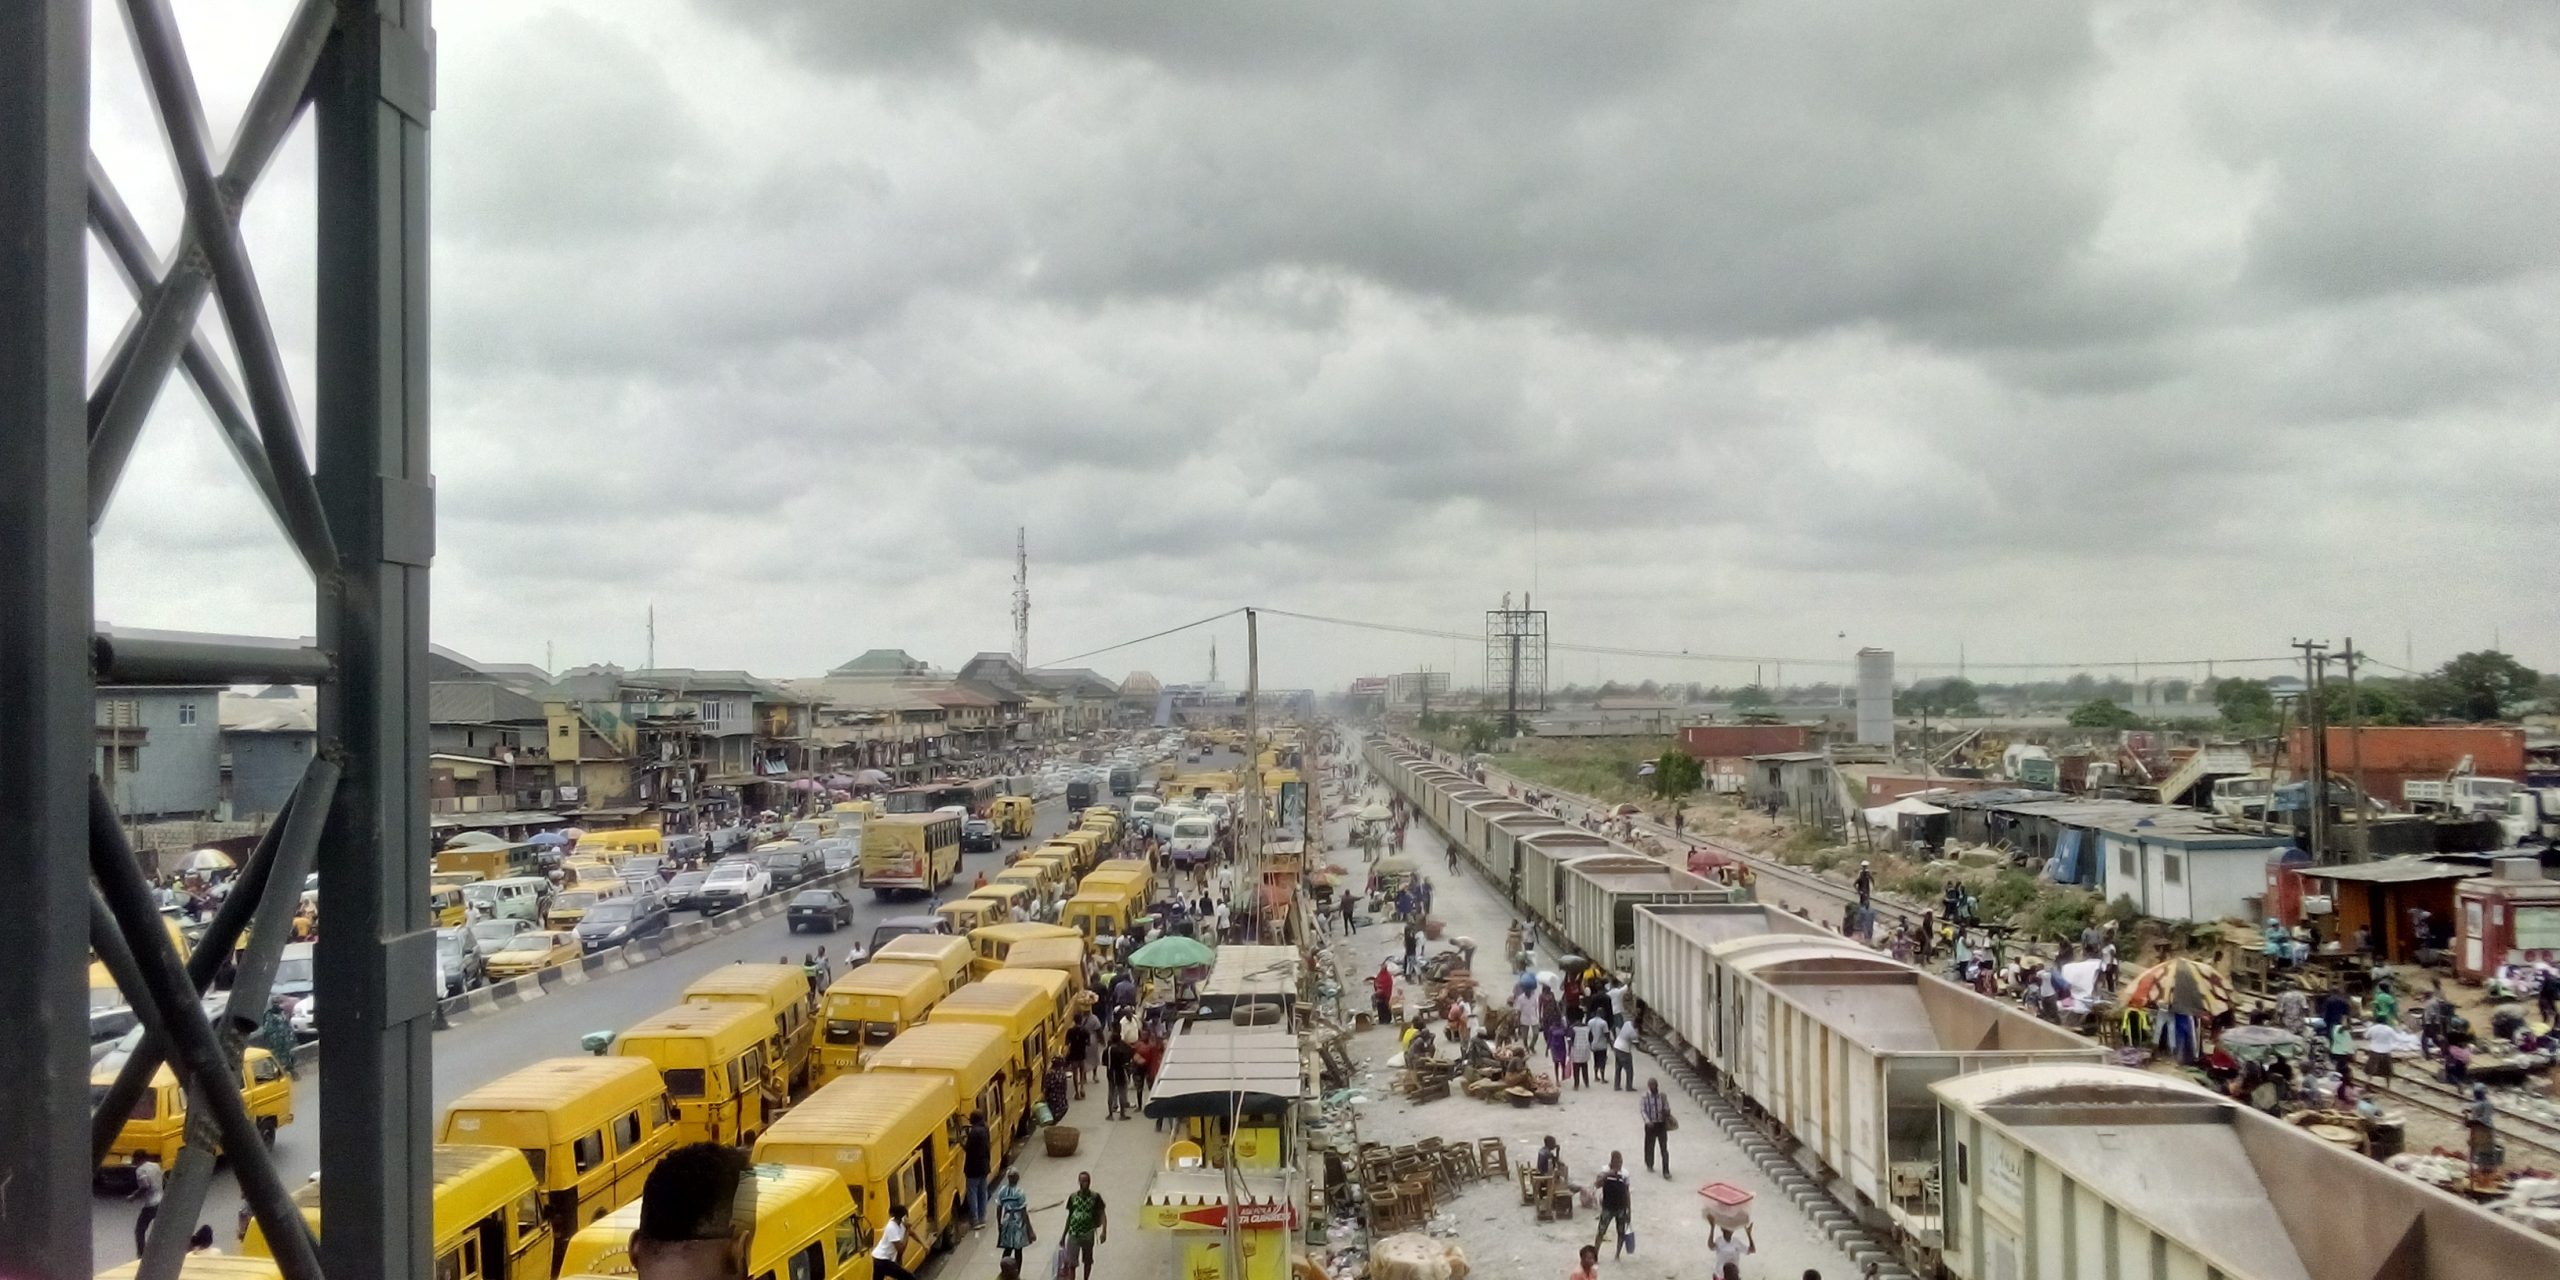 Becky's Journey: Can a High Impact Documentary Stem the Tide of Human Trafficking in Benin City?